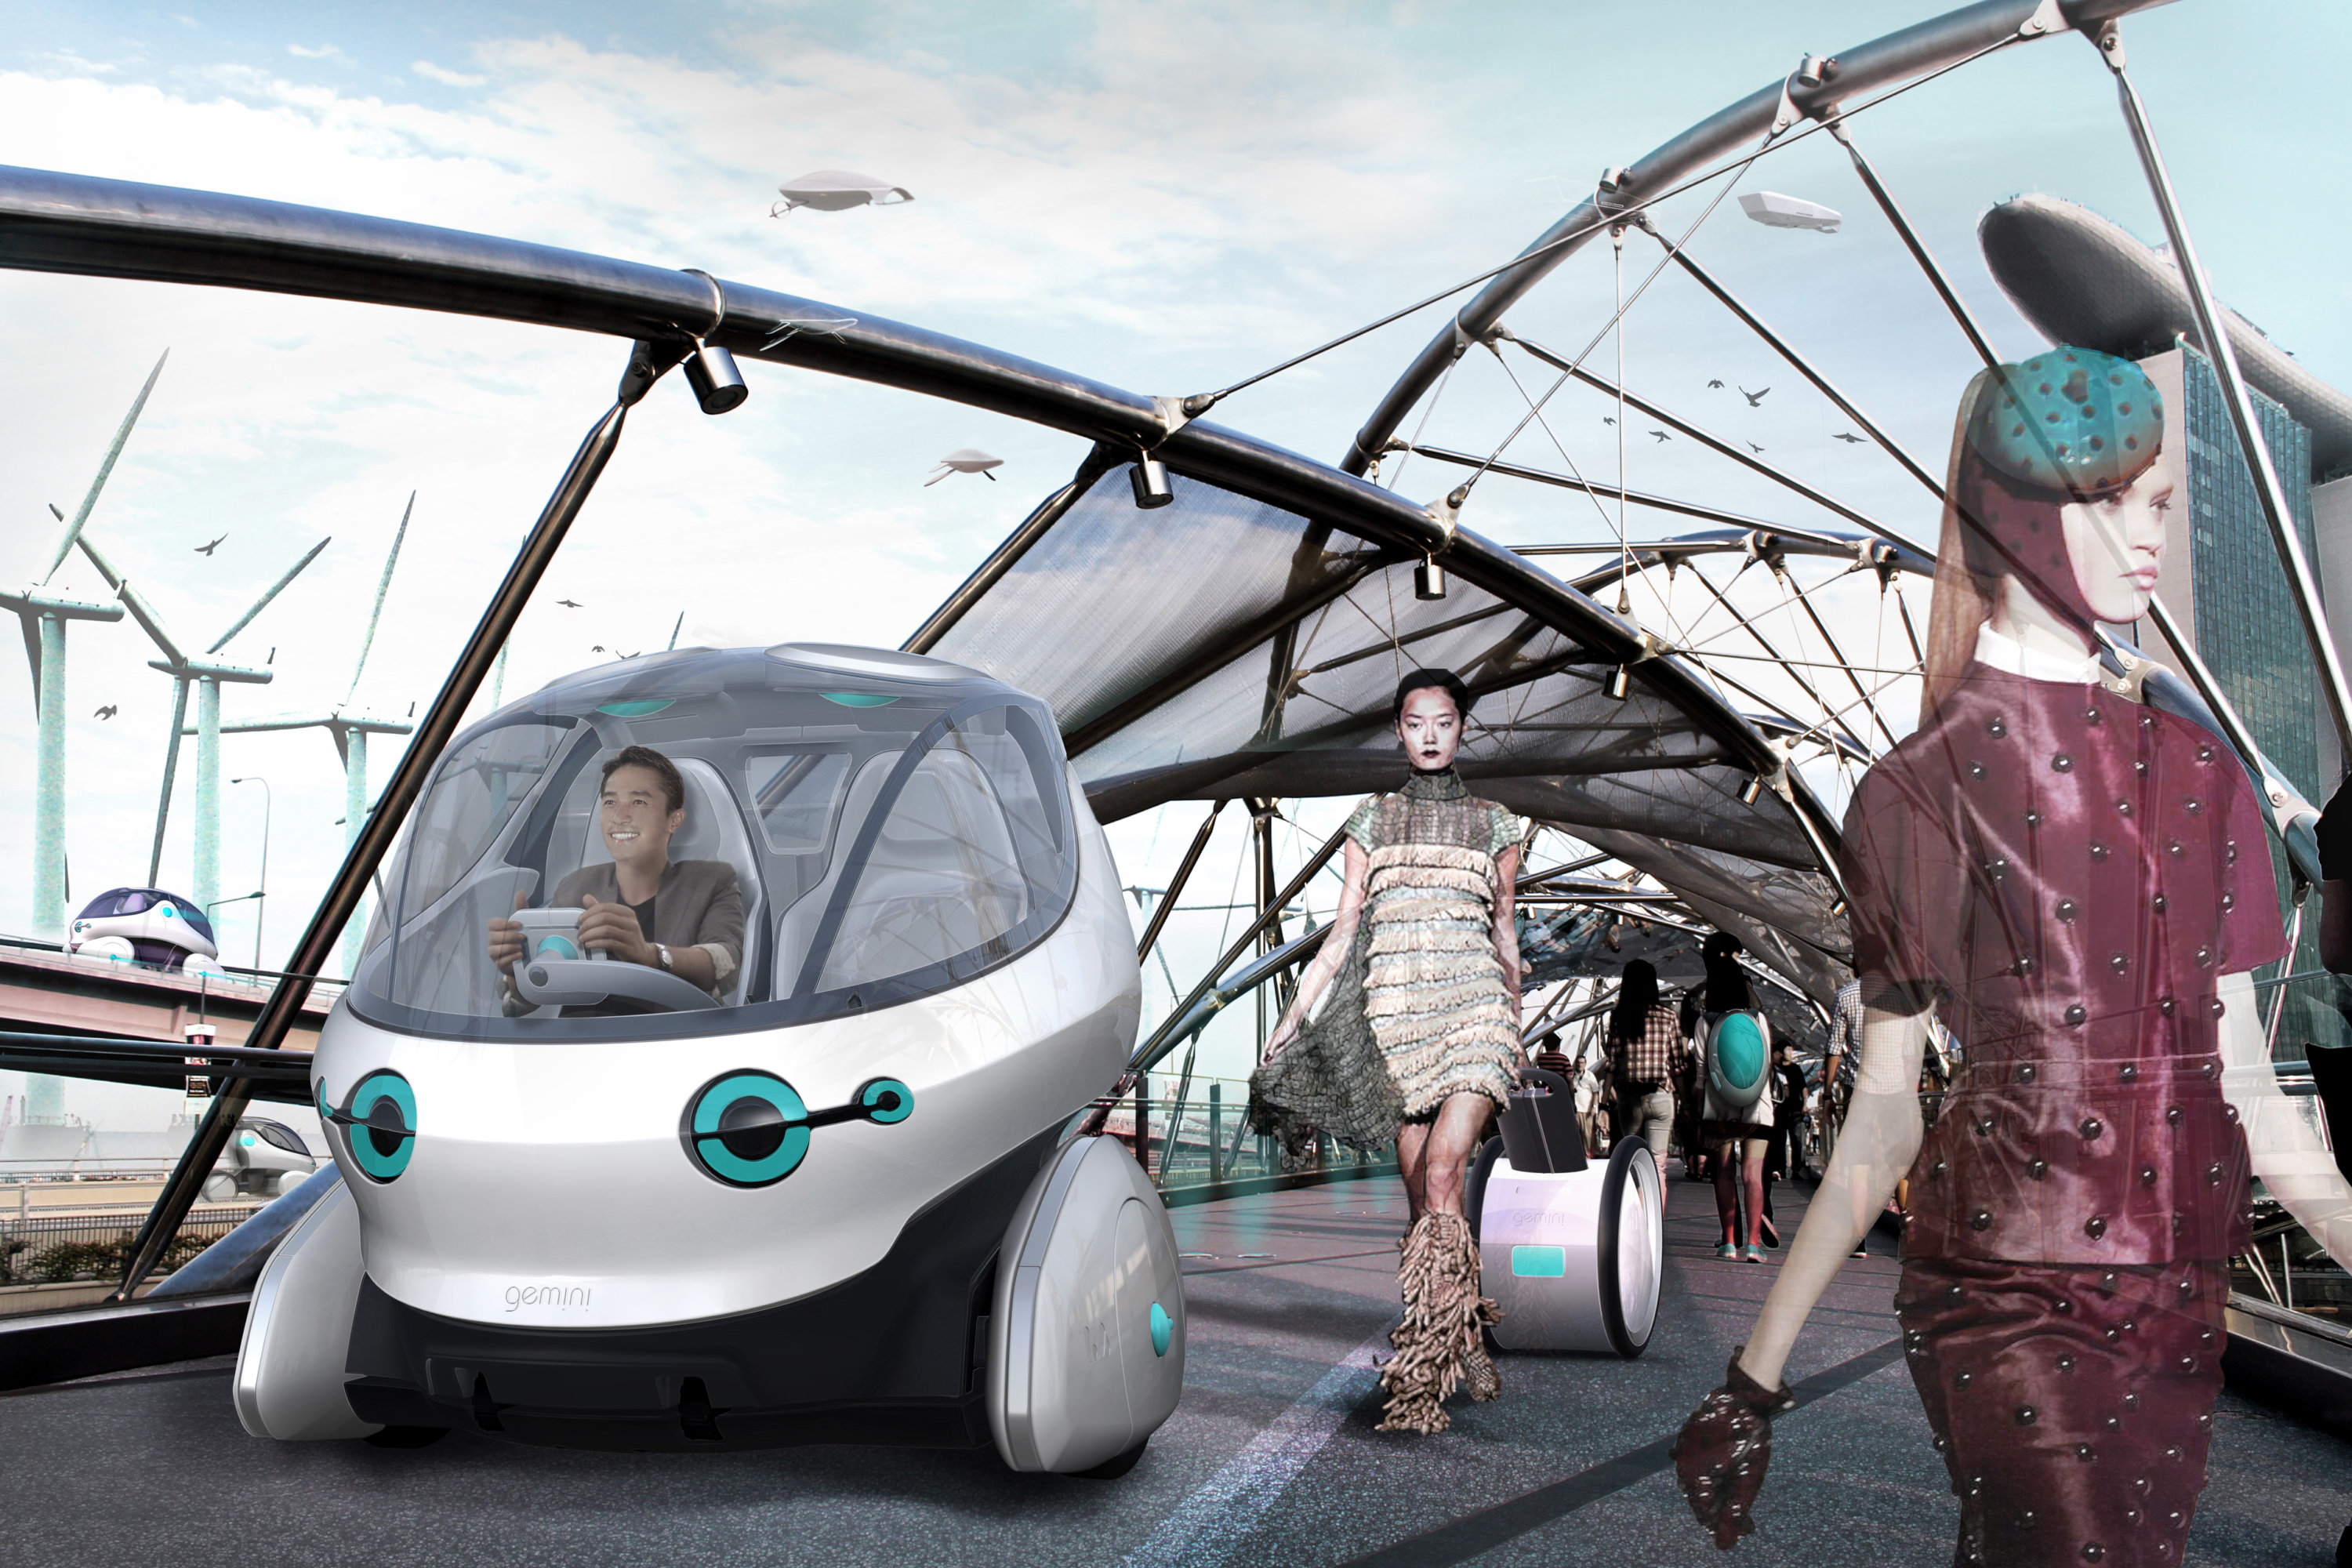 Gemini future mobility concept car for the metropolitan area of singapore